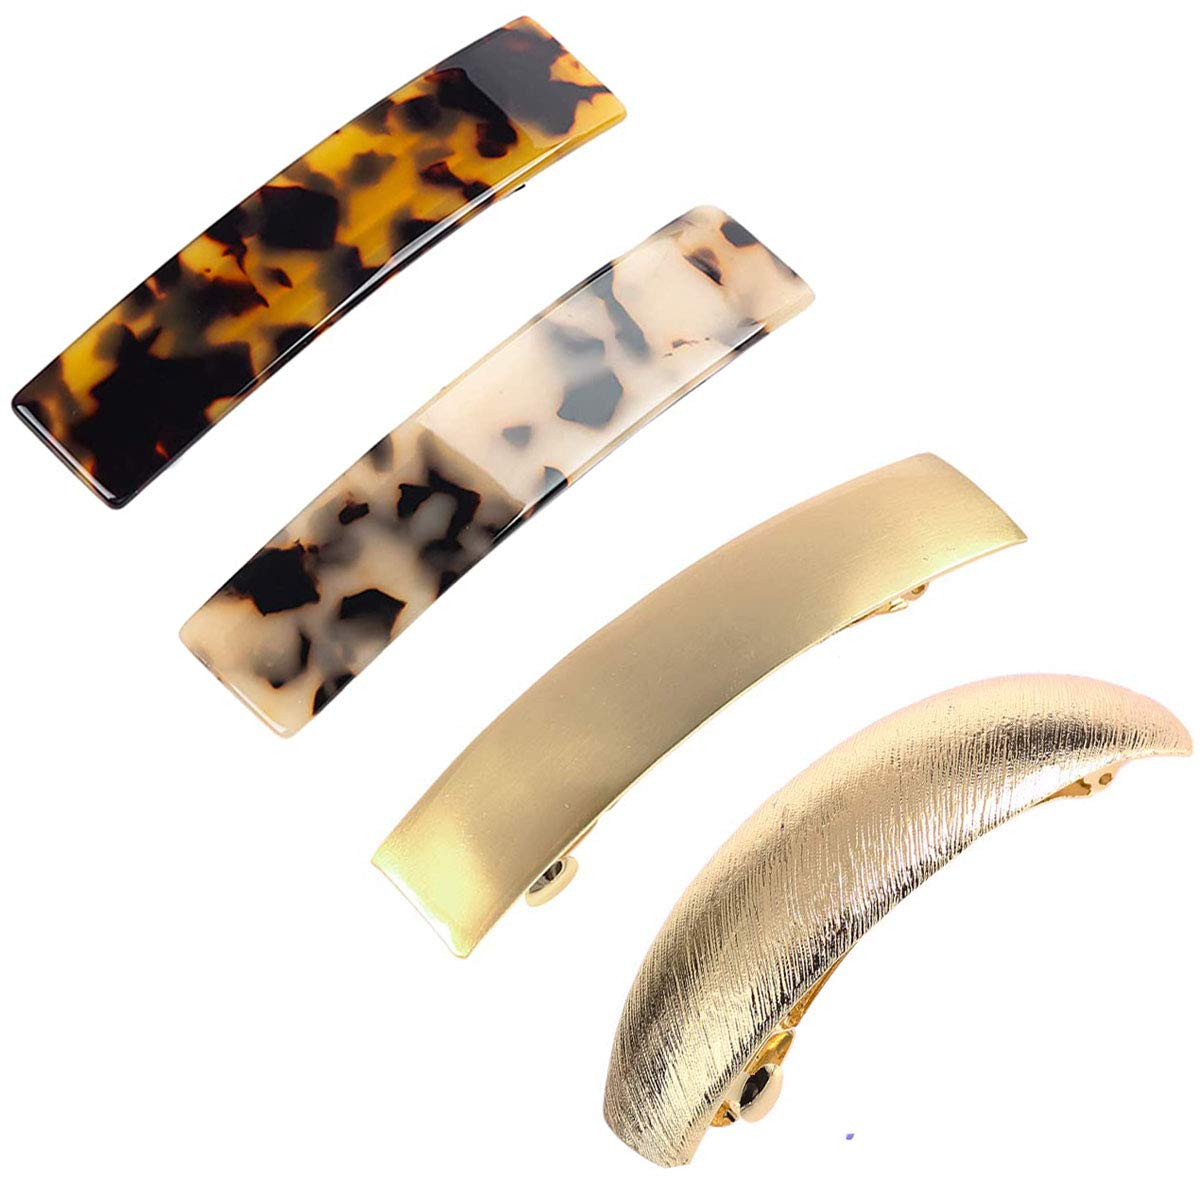 4 Pack Tortoise Shell Cellulose Acetate Acrylic Hair Barrettes Metail French Hair Pins Design Style Rectangular Automatic Hair Clip for Women Girls Gift